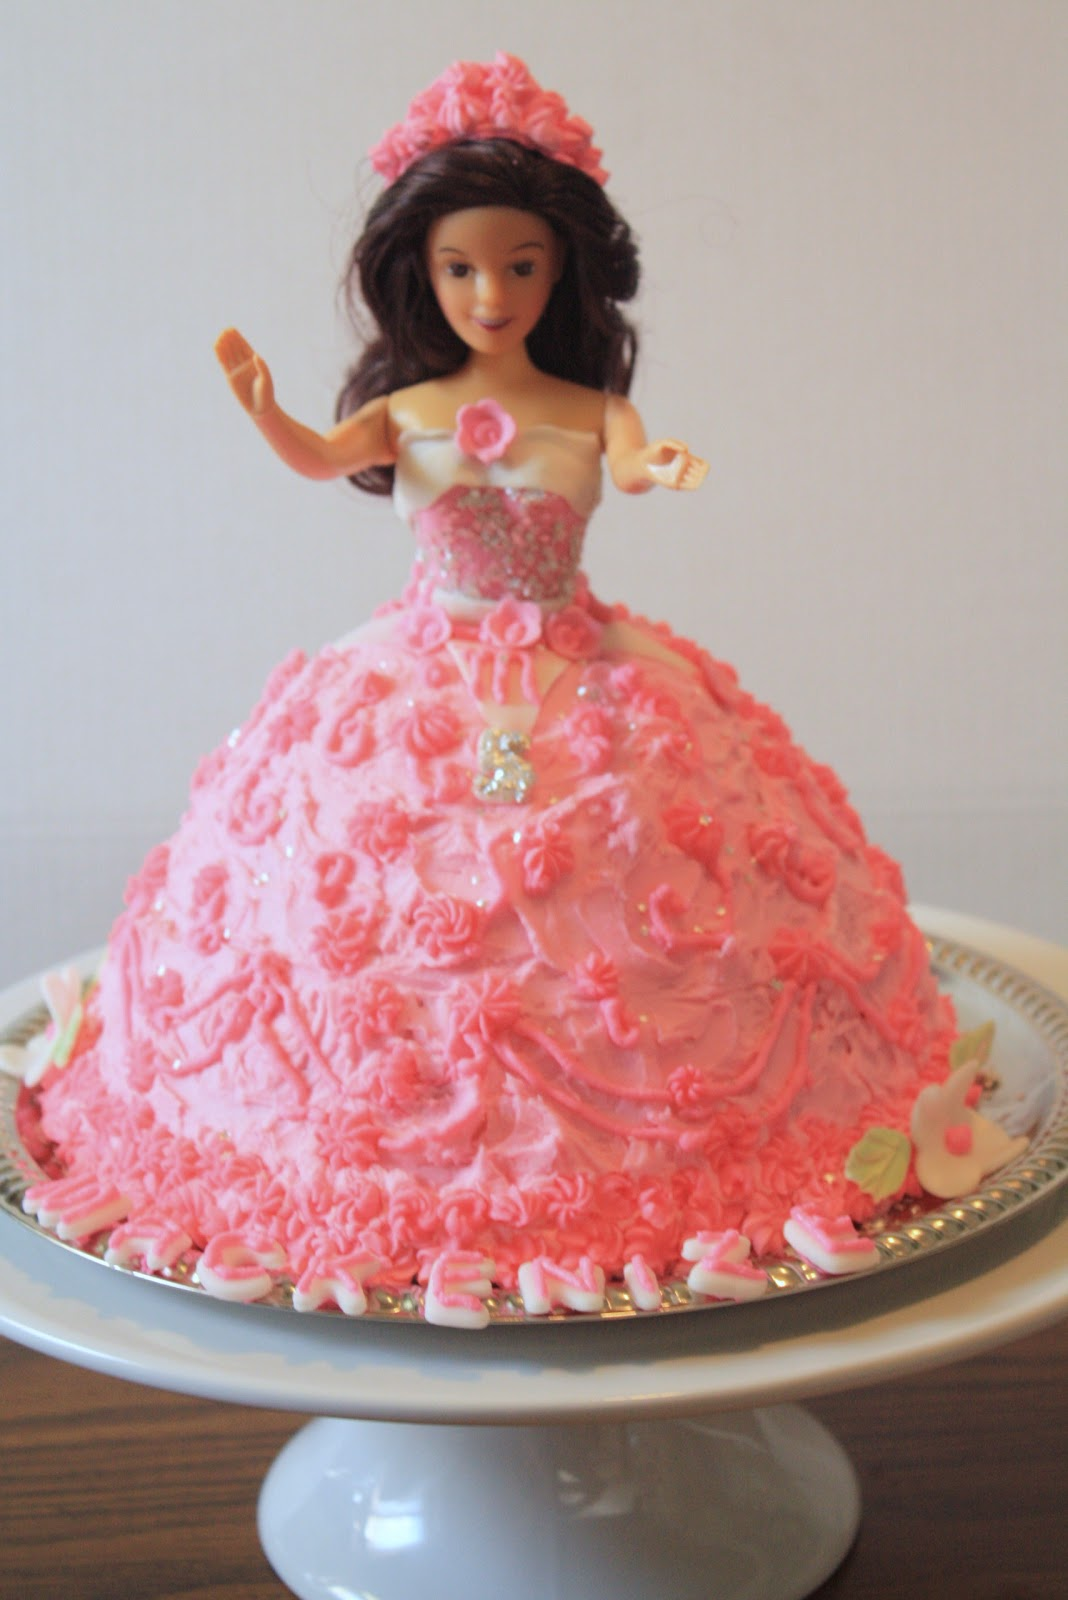 Download Barbie Cake Images : Image Princess Doll Cake Download